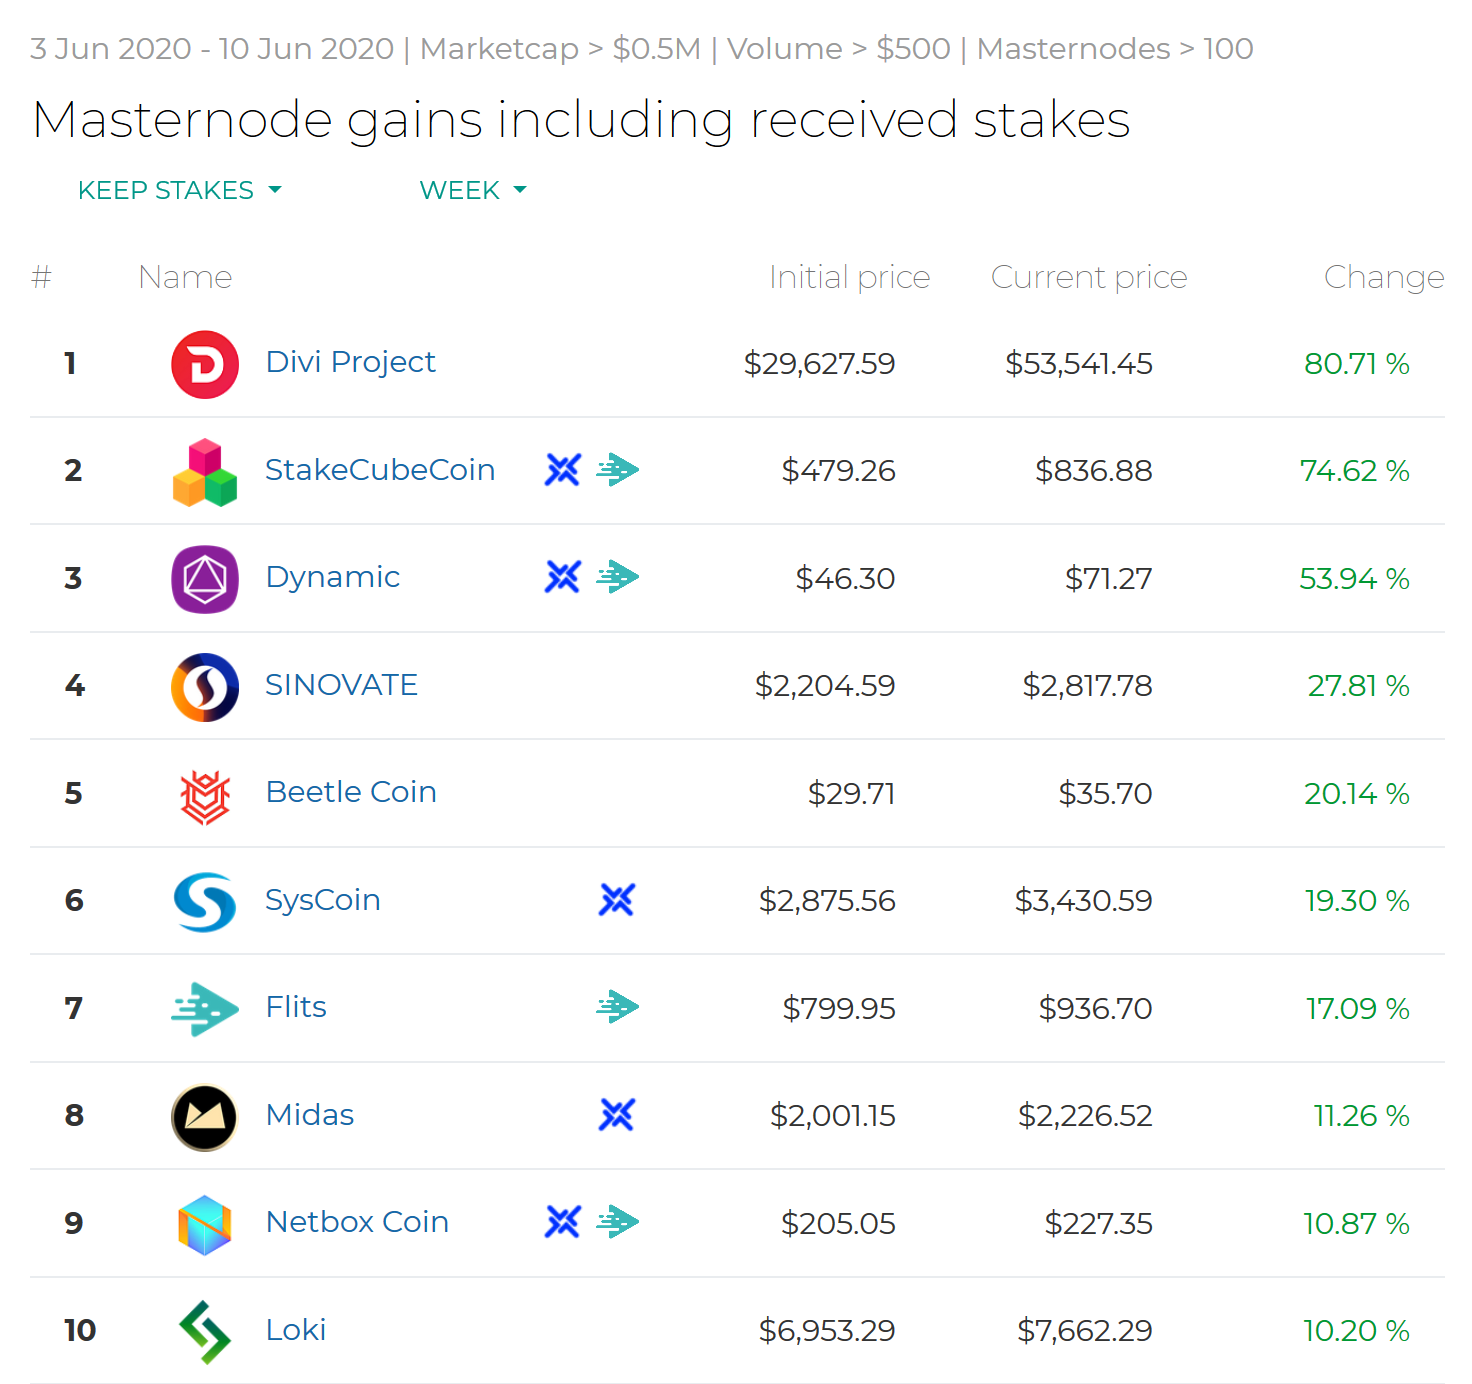 Screenshot_2020-06-10-Masternode-gains-including-received-stakes-2-